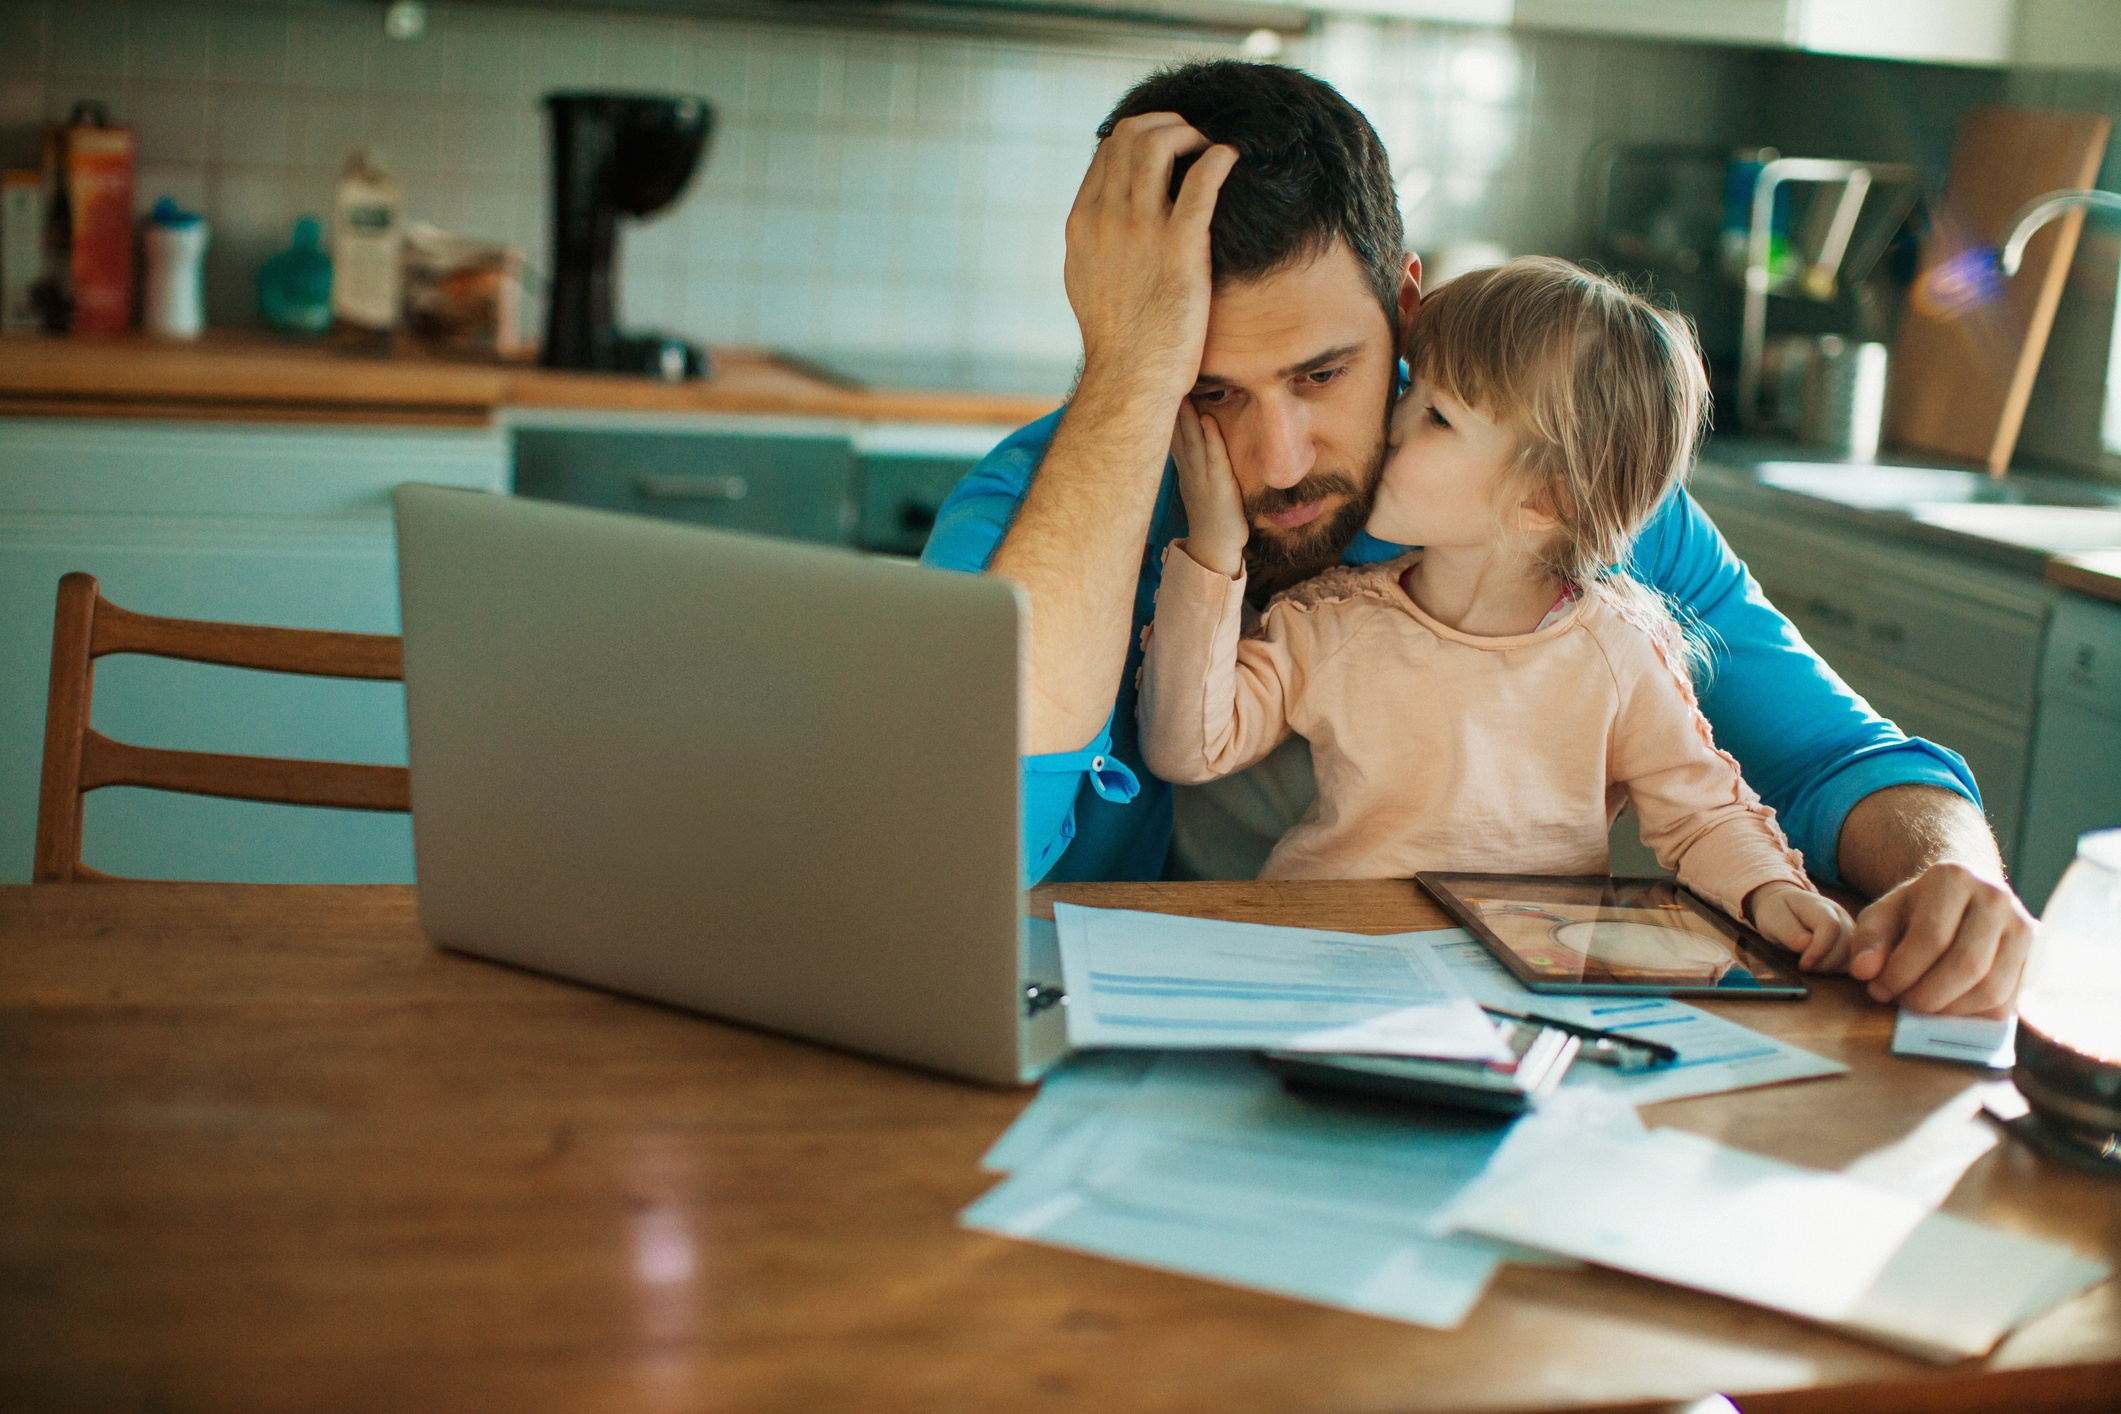 Father balancing work and family